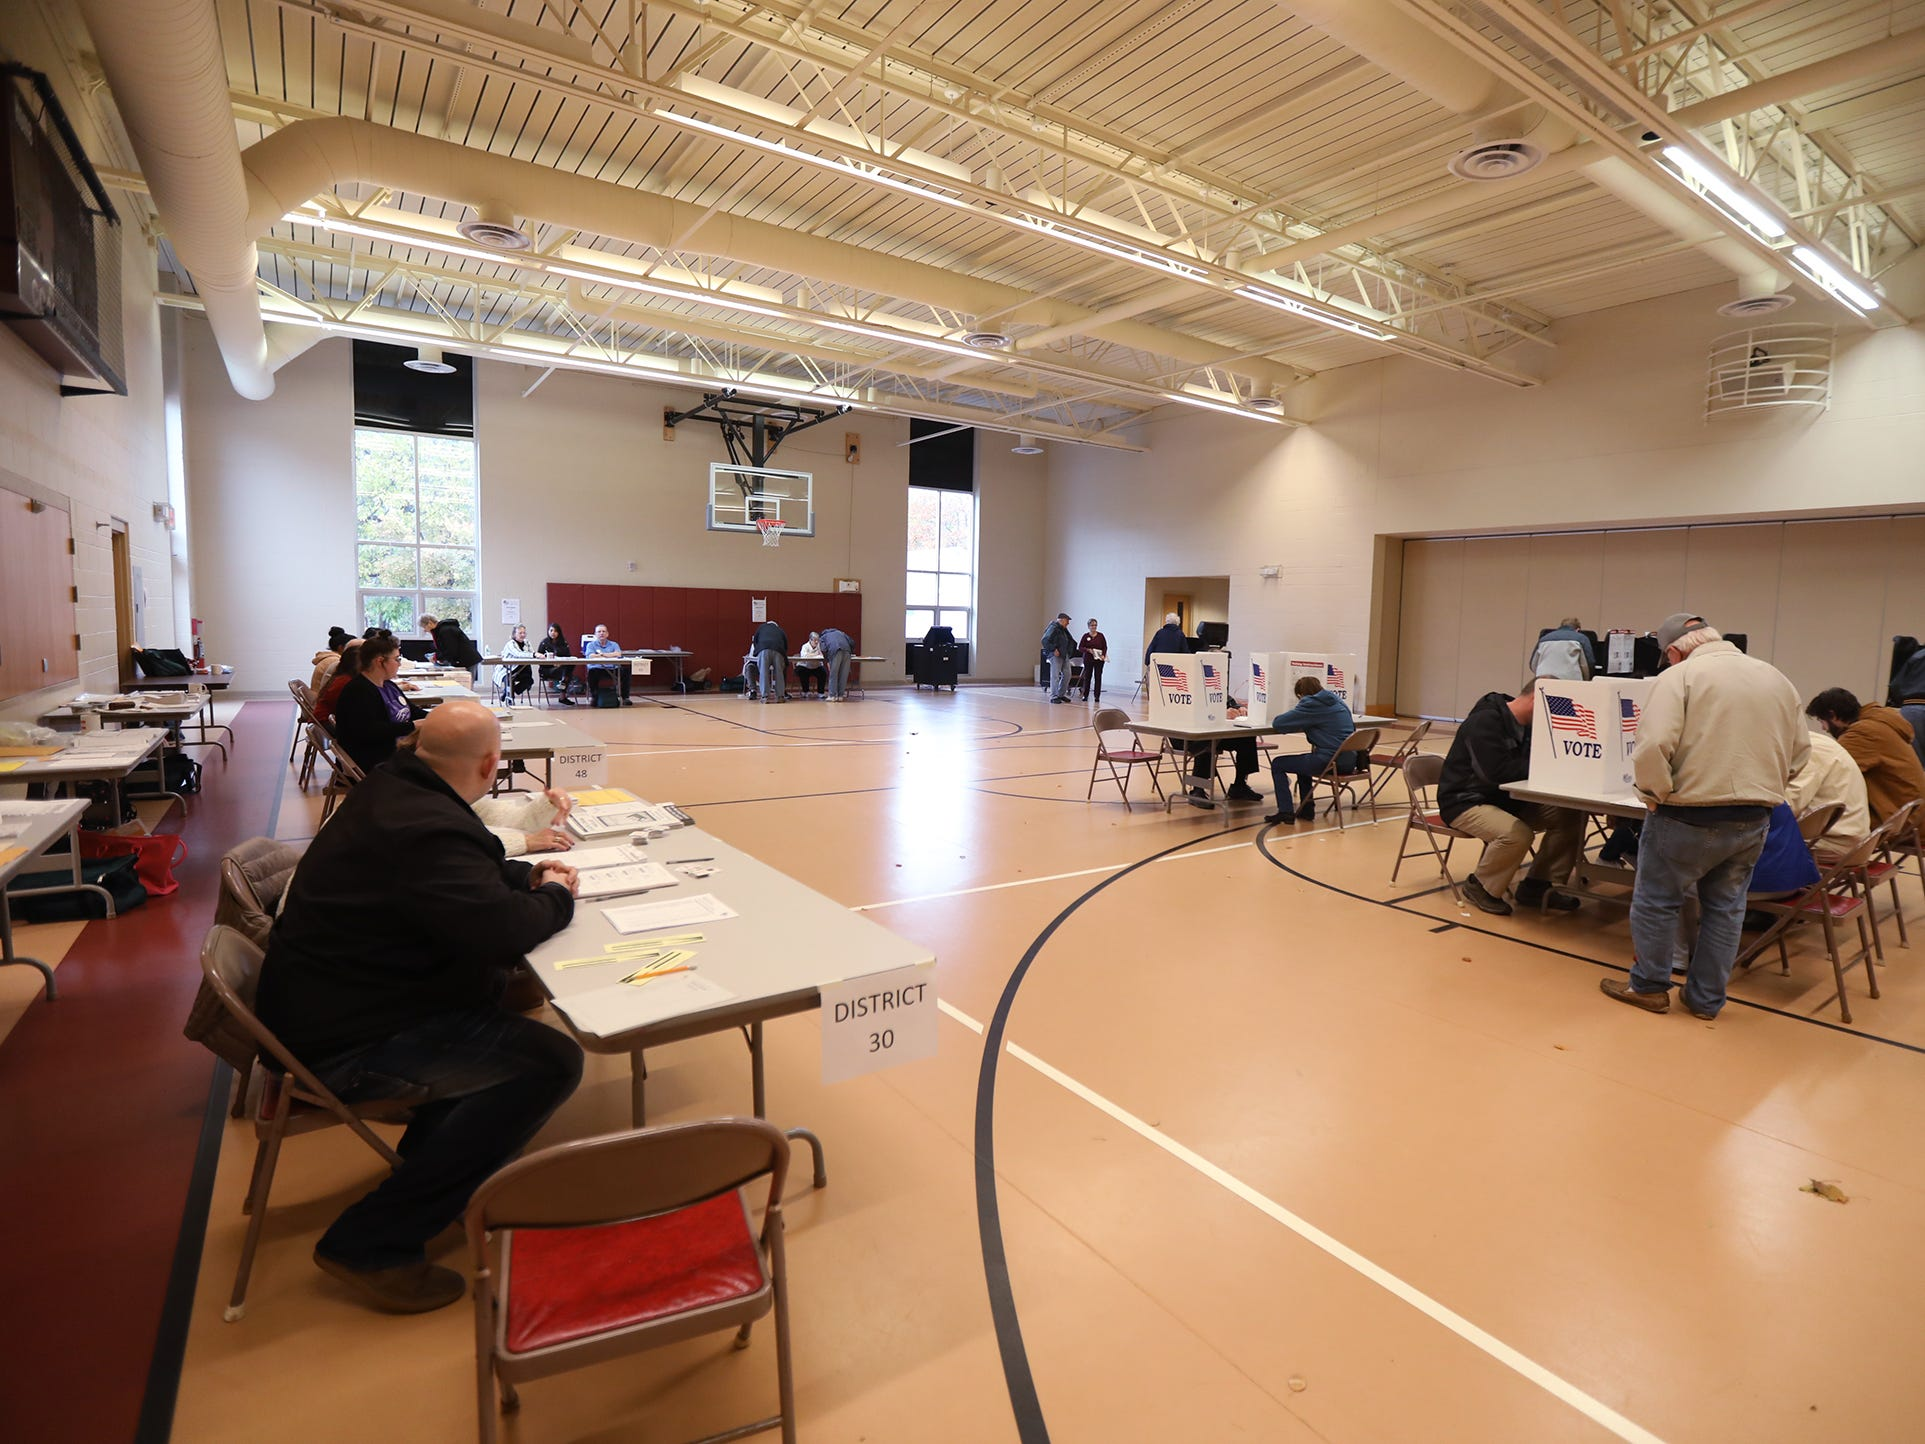 A steady flow of voters came to Aldersgate United Methodist Church in Greece to vote.